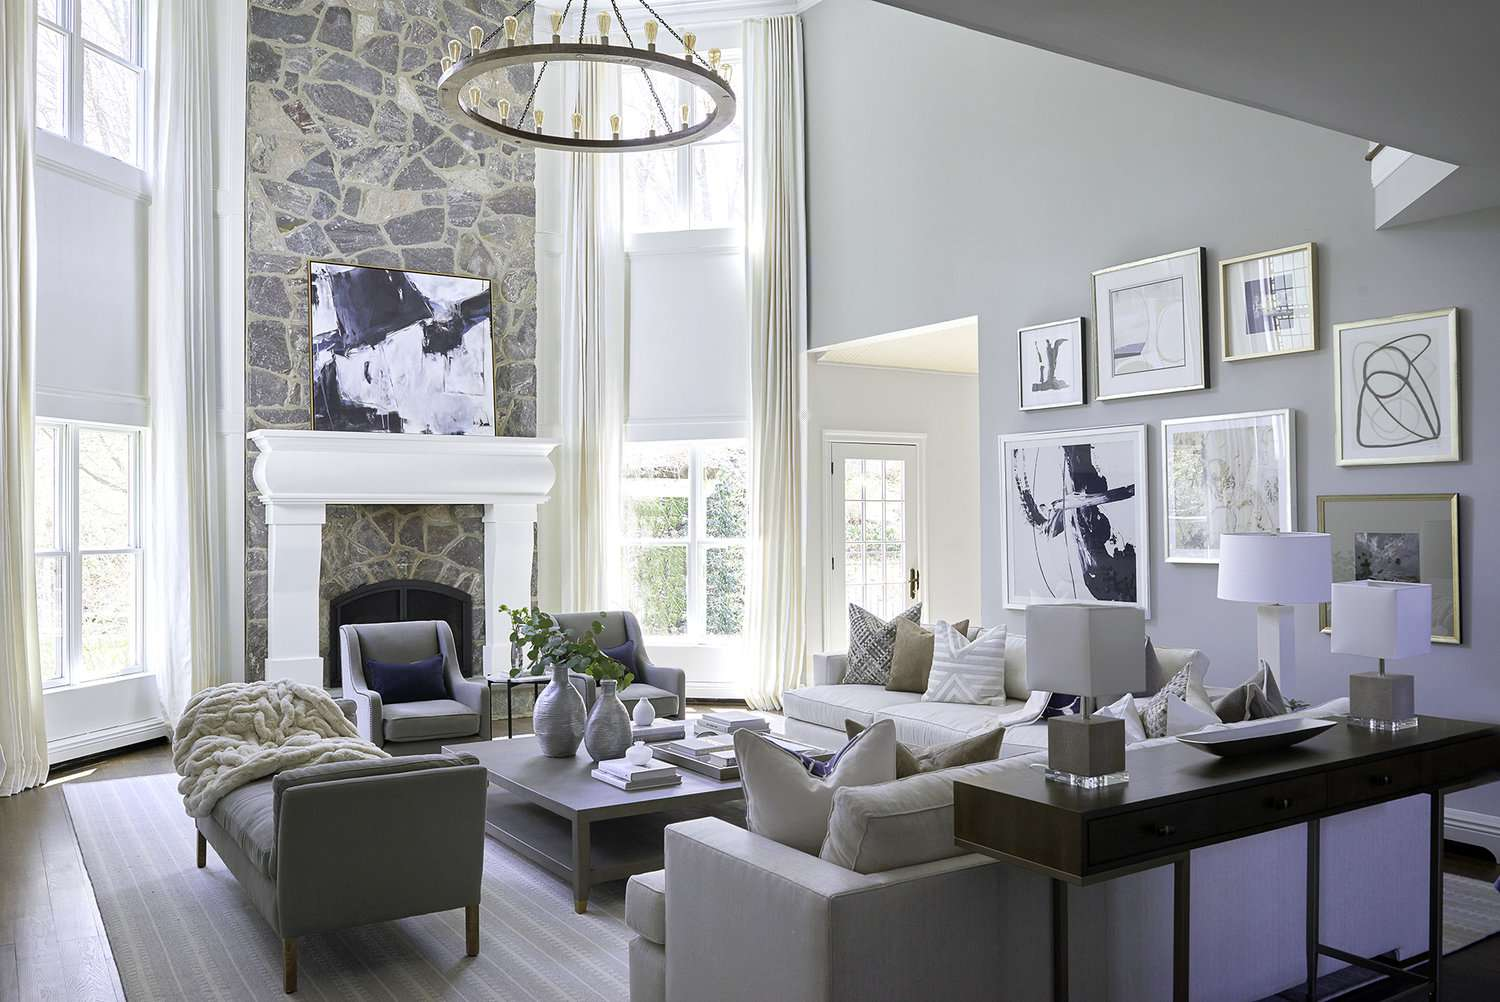 White rustic living room with tall ceilings and chandelier.